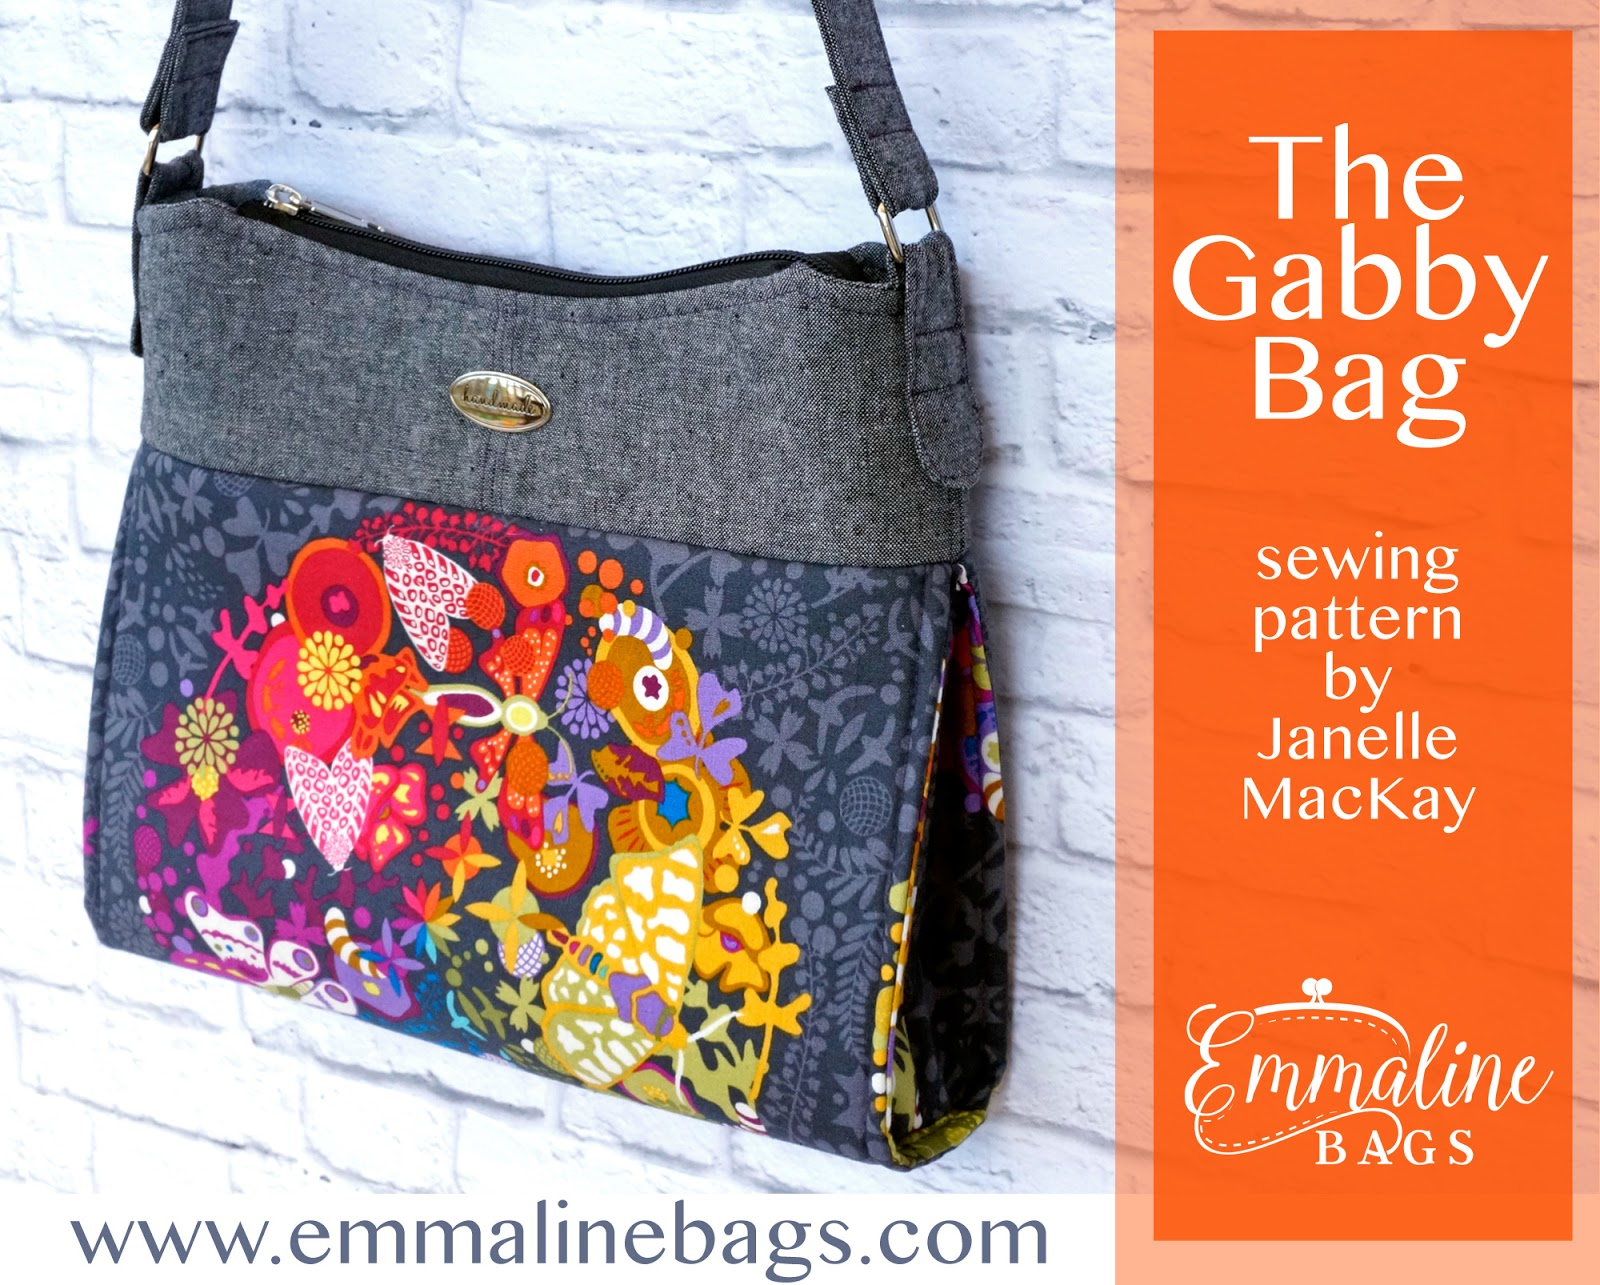 The Gabby Bag Sewing Pattern Publicly Released